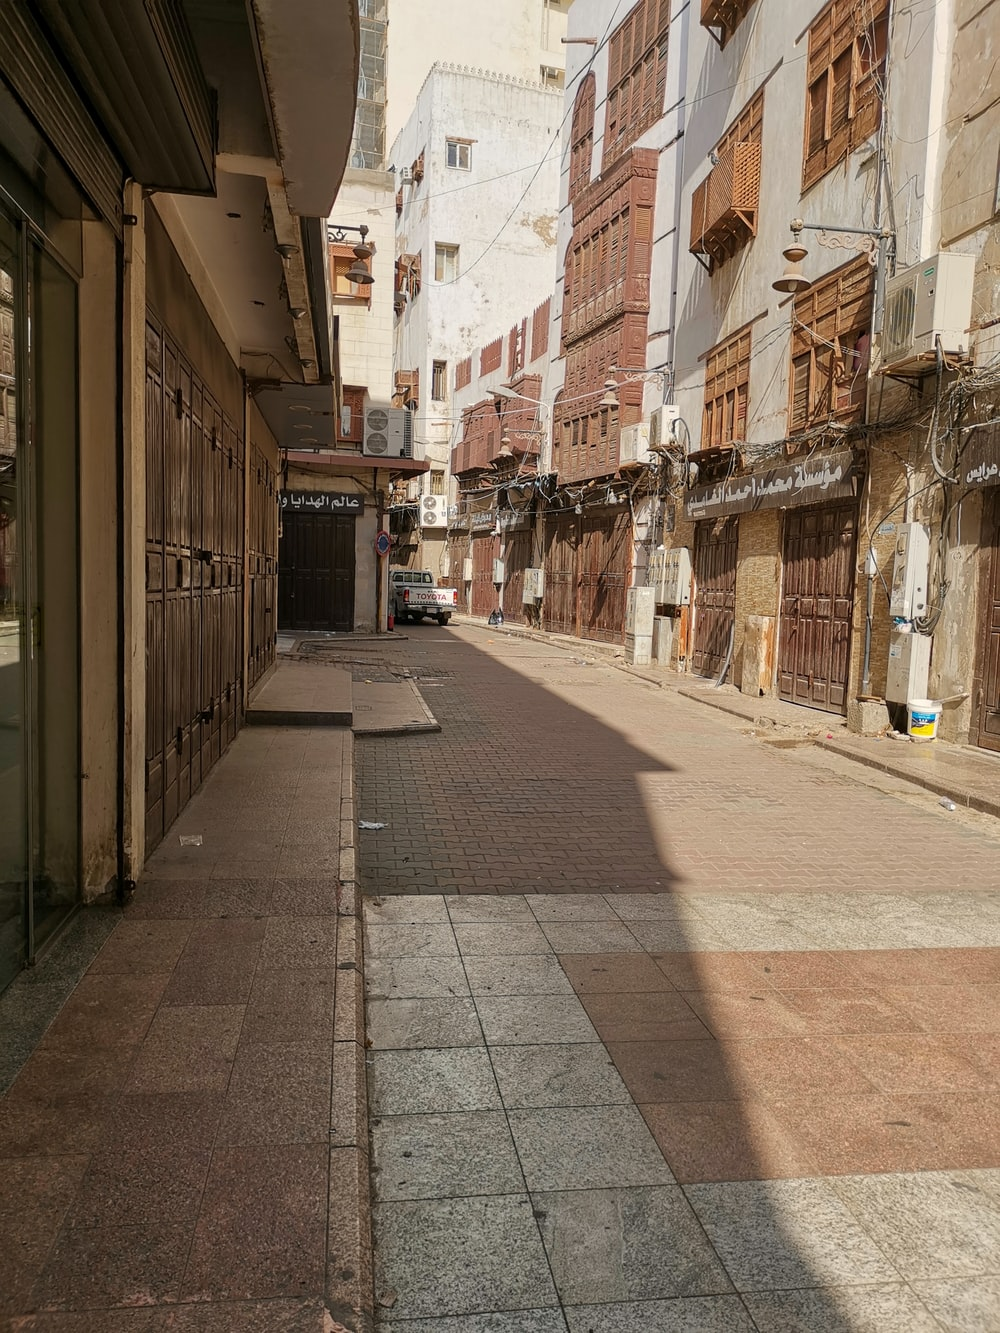 empty alleyway during daytime